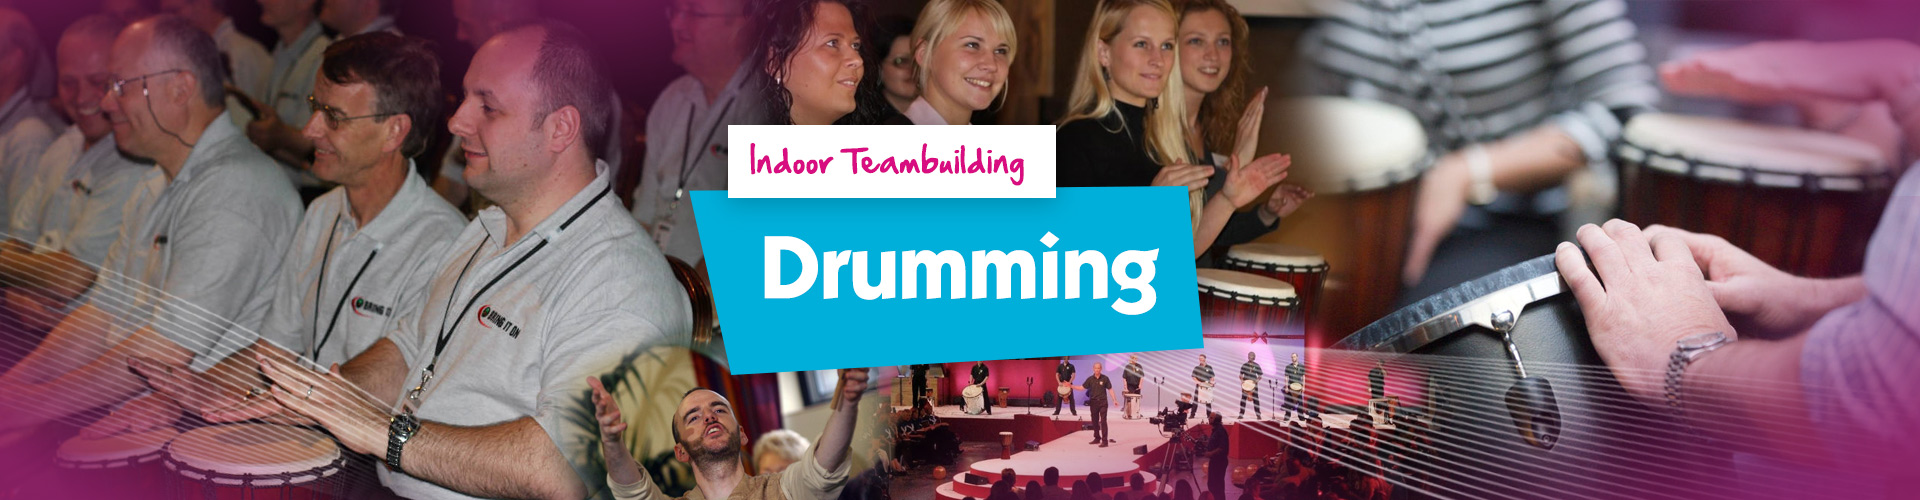 TB IndoorEvents 1920x500 Banner Drumming